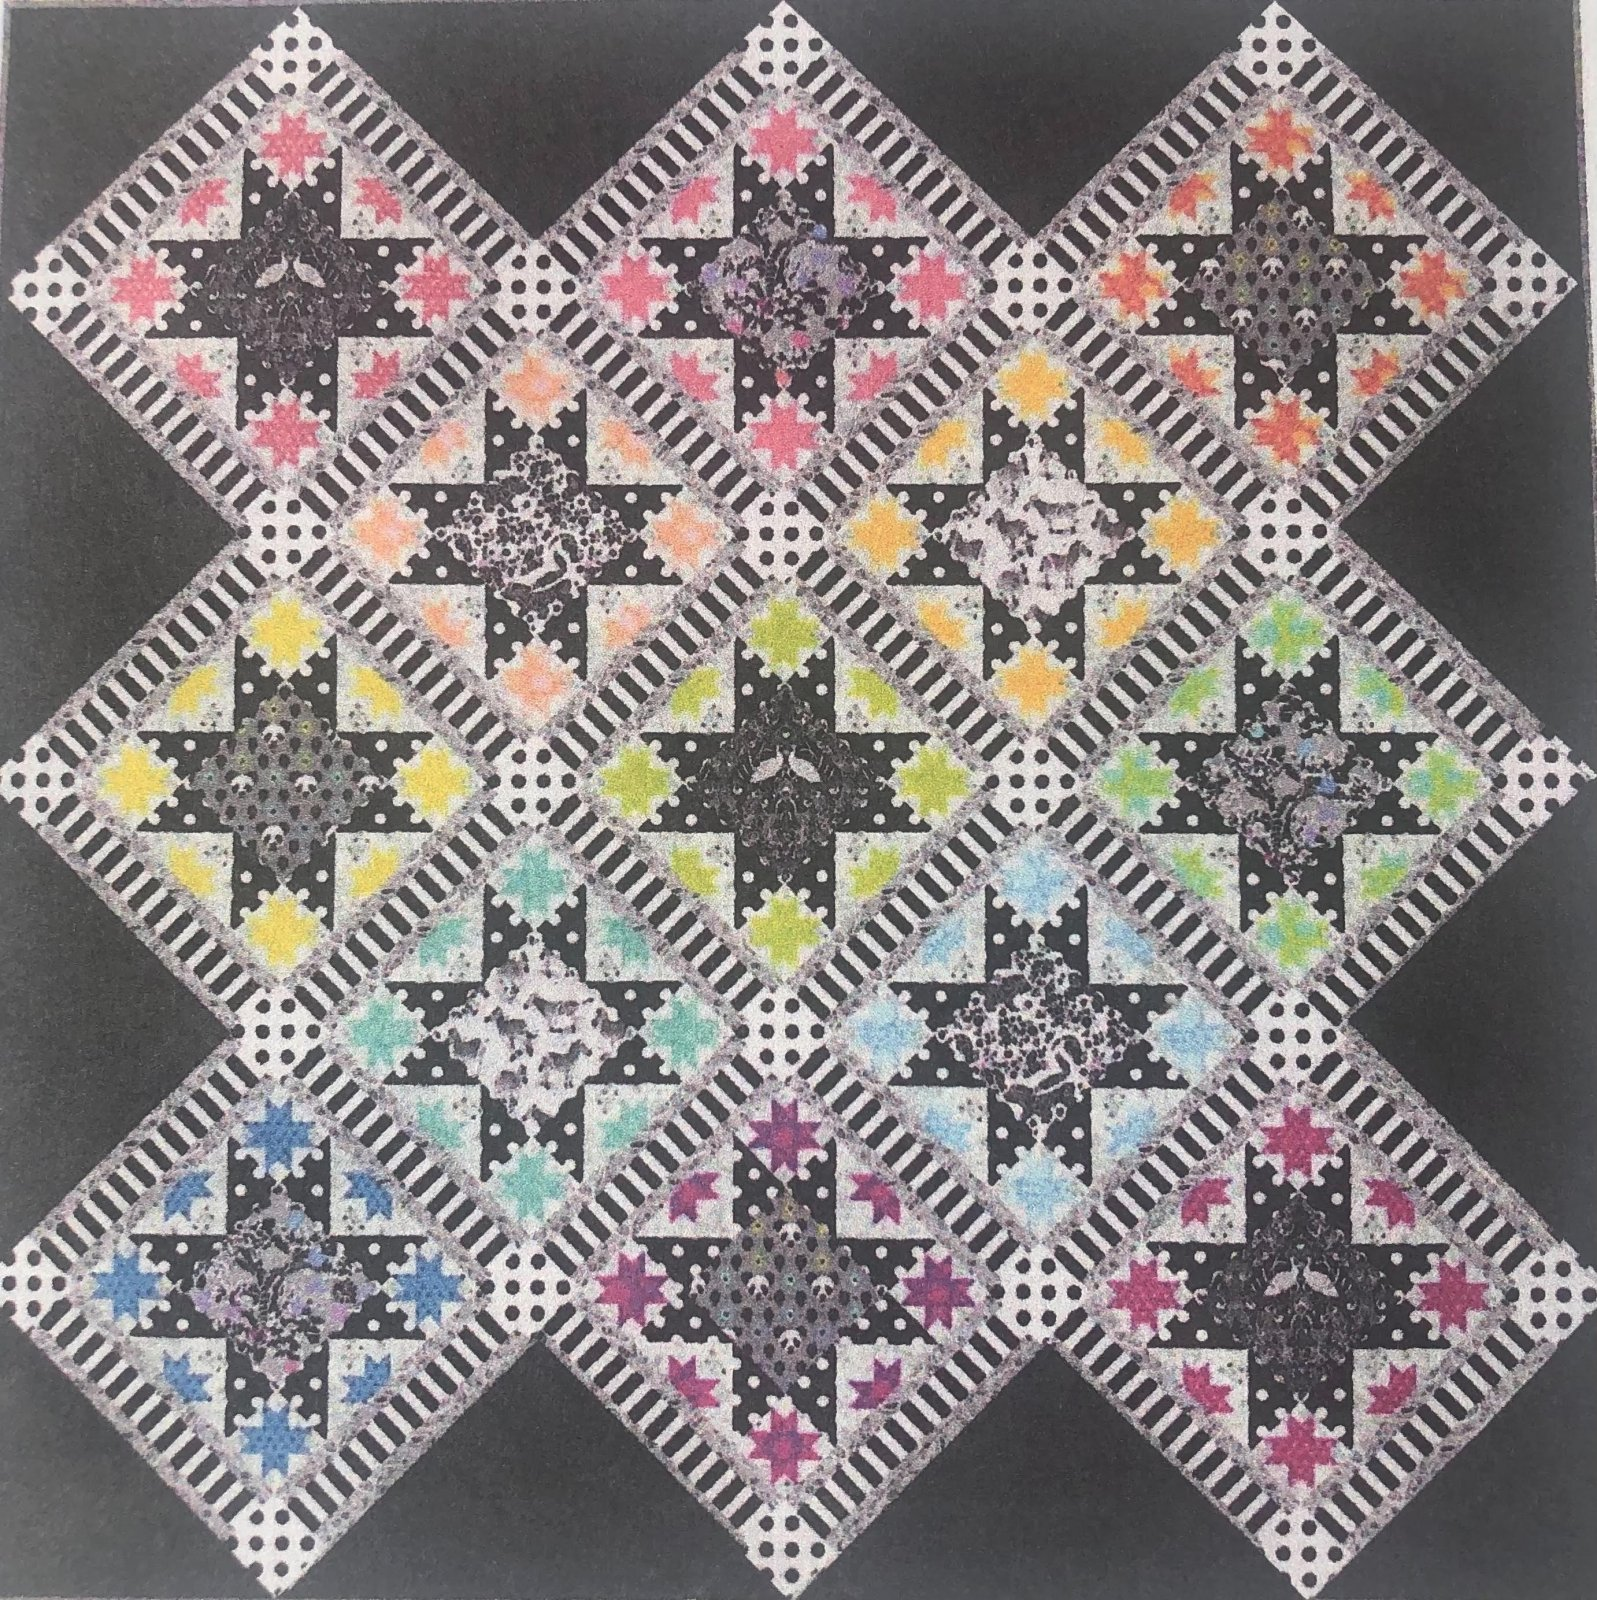 Tula Pink's Opening Night Quilt Kit featuring Linework and True Colors (All Black Borders)